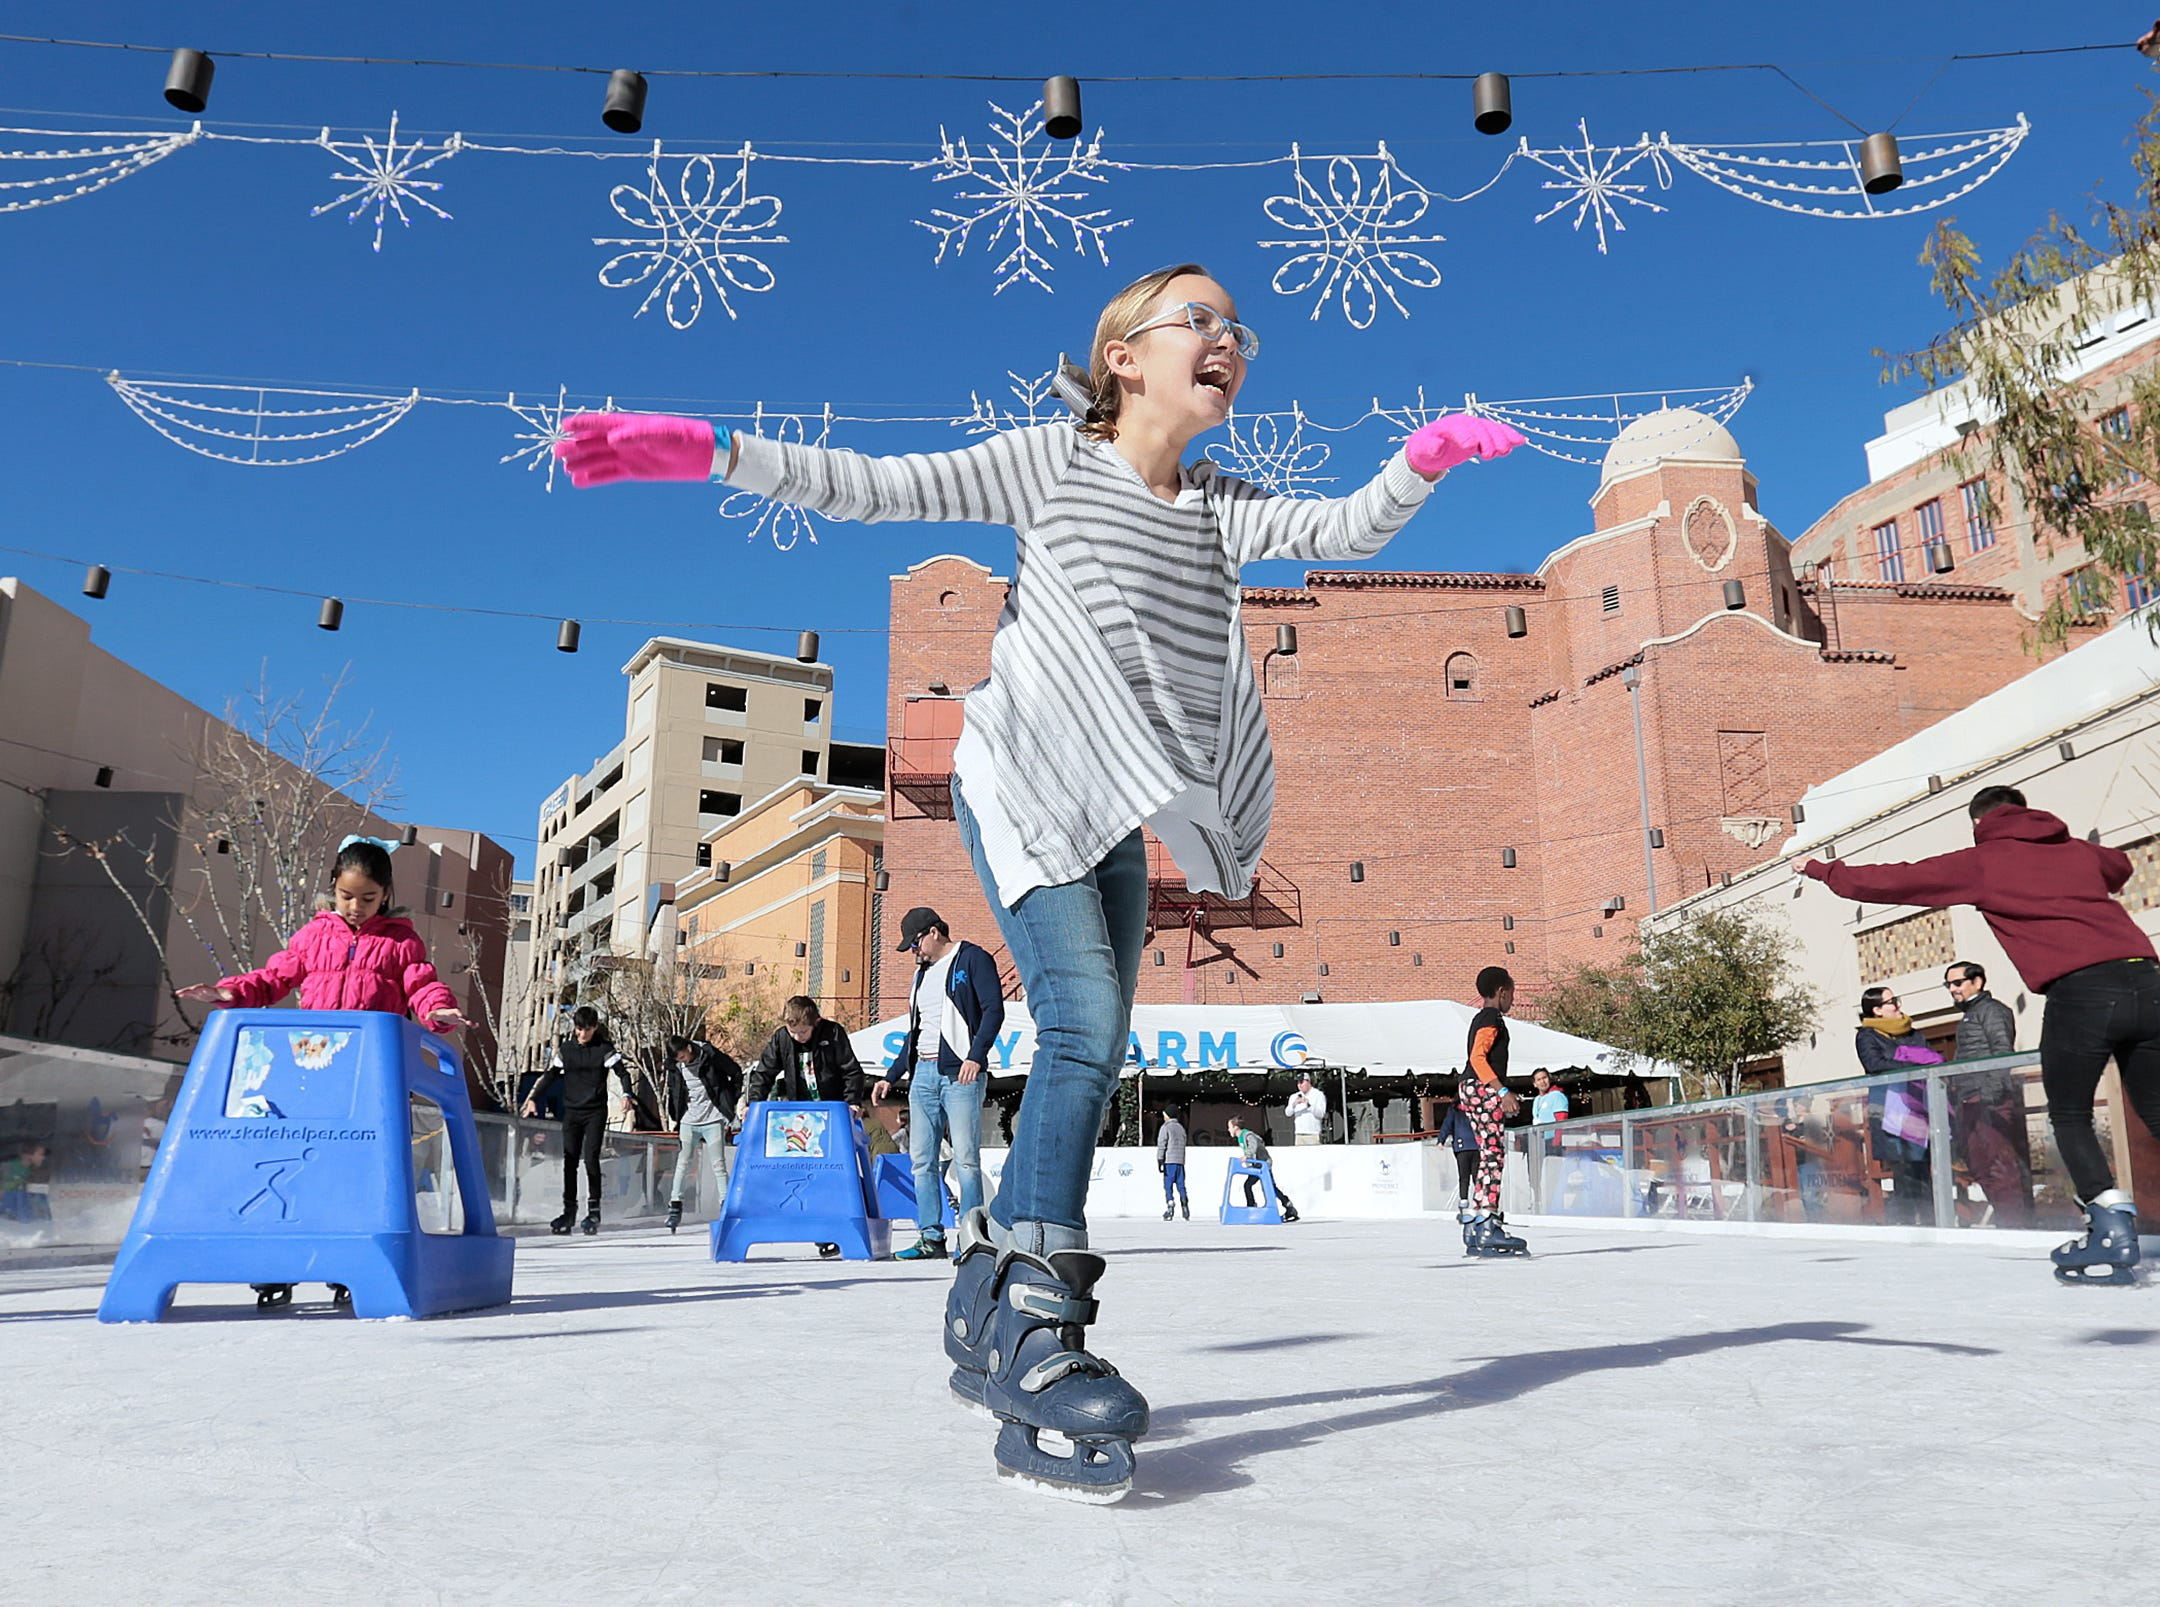 Paula Aguila, 10, enjoys the skating rink at WinterFest on Friday afternoon. It is the final weekend to enjoy WinterFest in Downtown El Paso. The event sponsored by the Hospitals of Providence features ice skating, holiday shopping and other special events. WinterFest is located in Arts Festival Plaza.